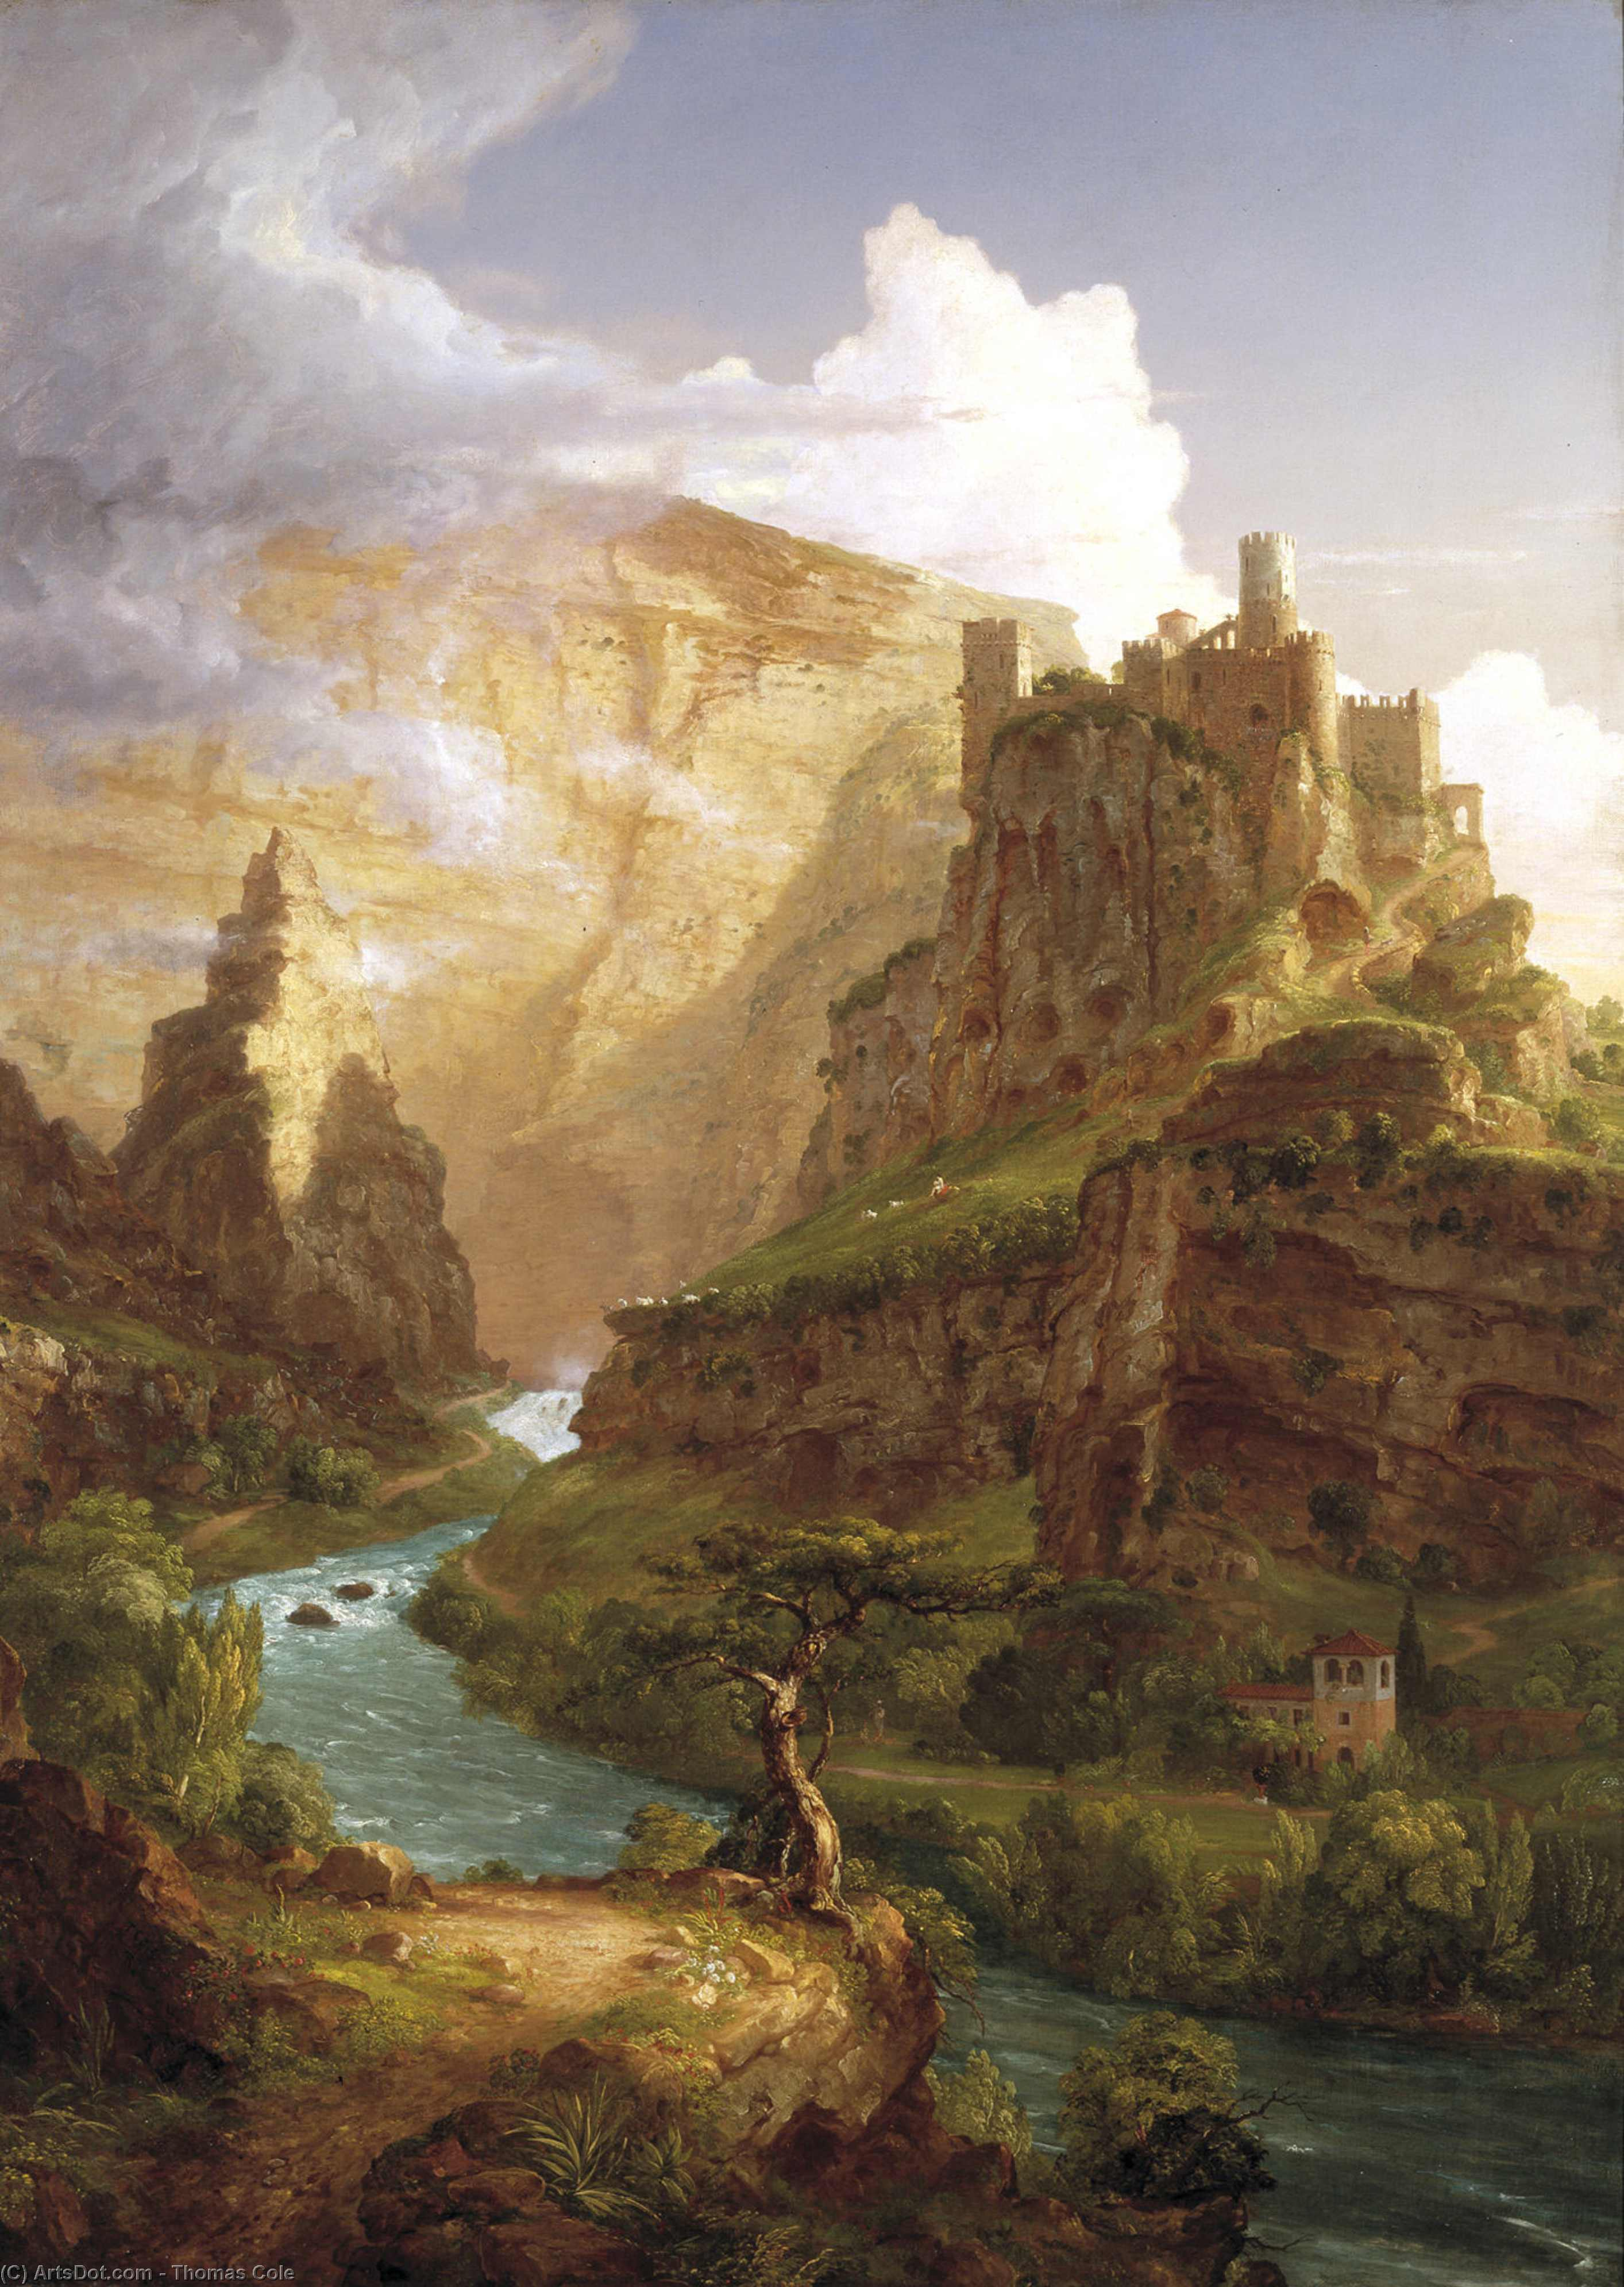 The Fountain of Vaucluse, 1841 by Thomas Cole (1801-1848, United Kingdom)